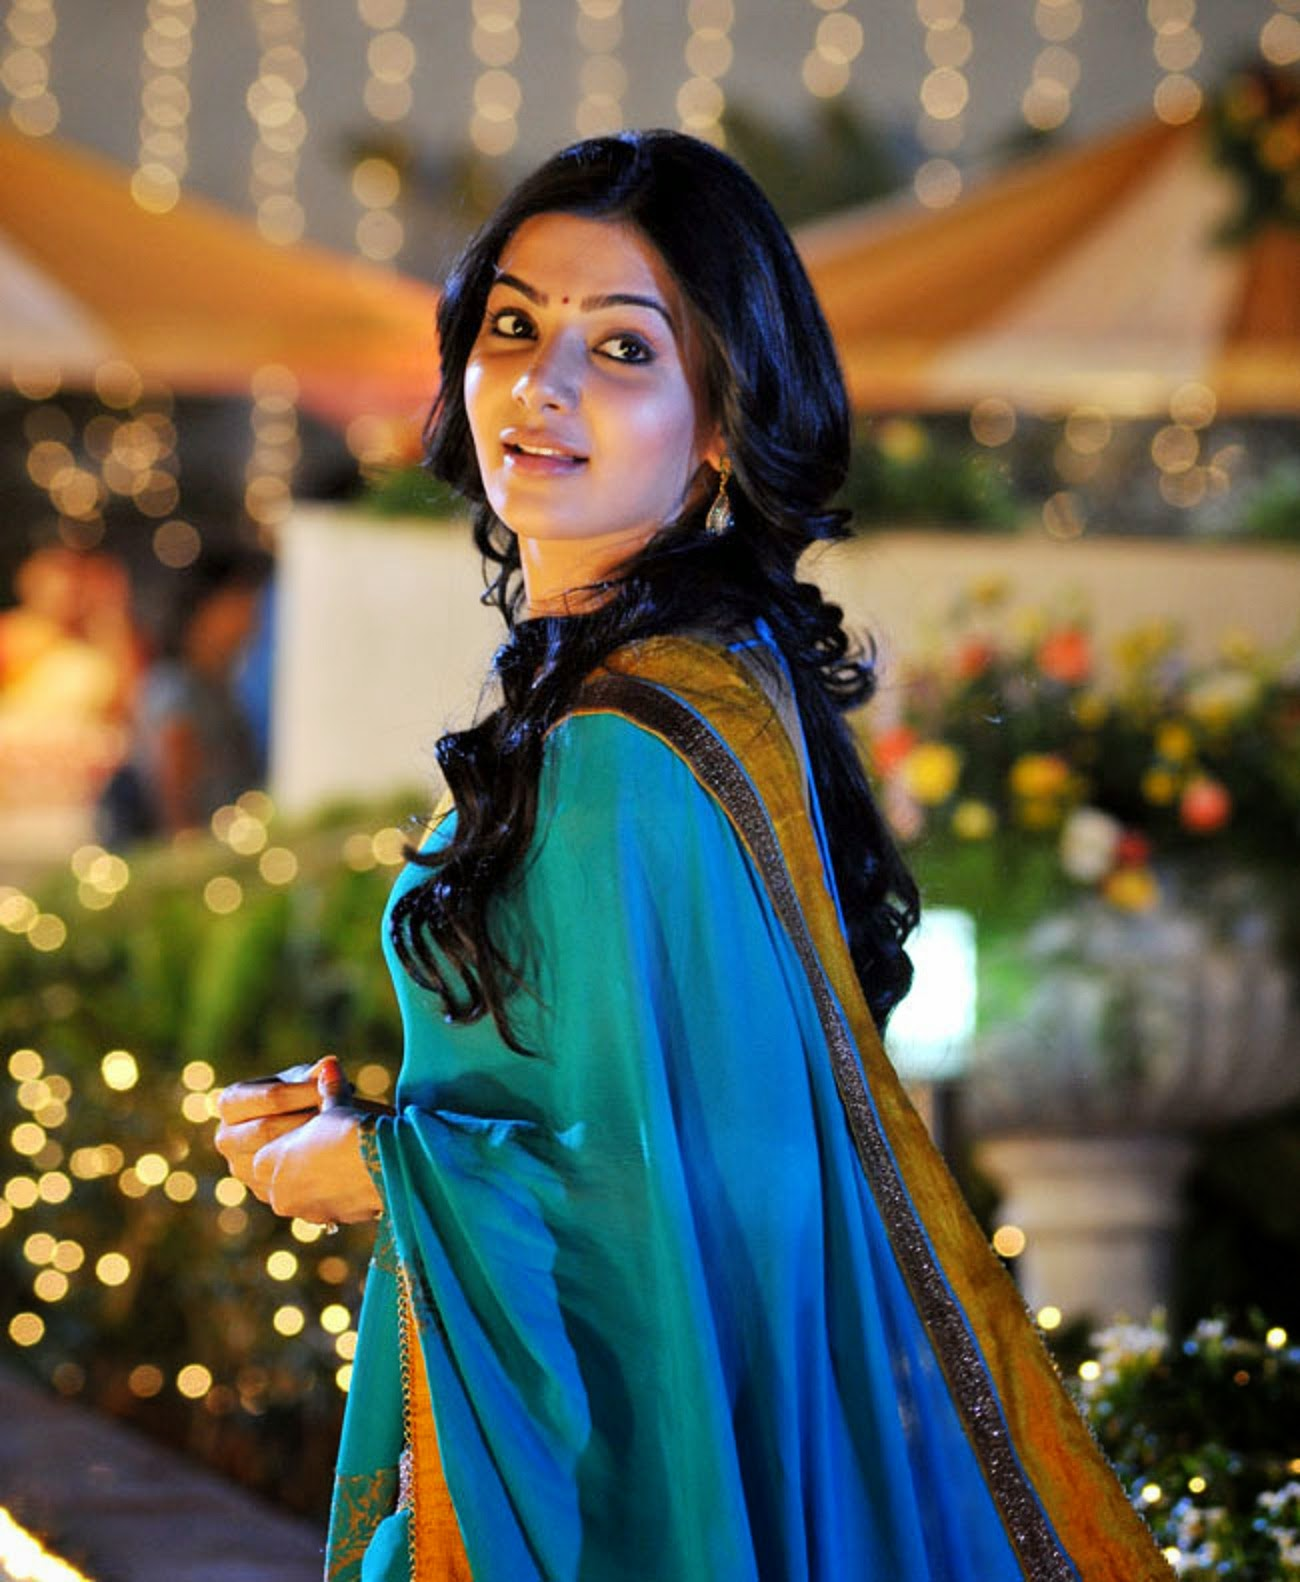 samantha ruth prabhu wallpapers - free all hd wallpapers download